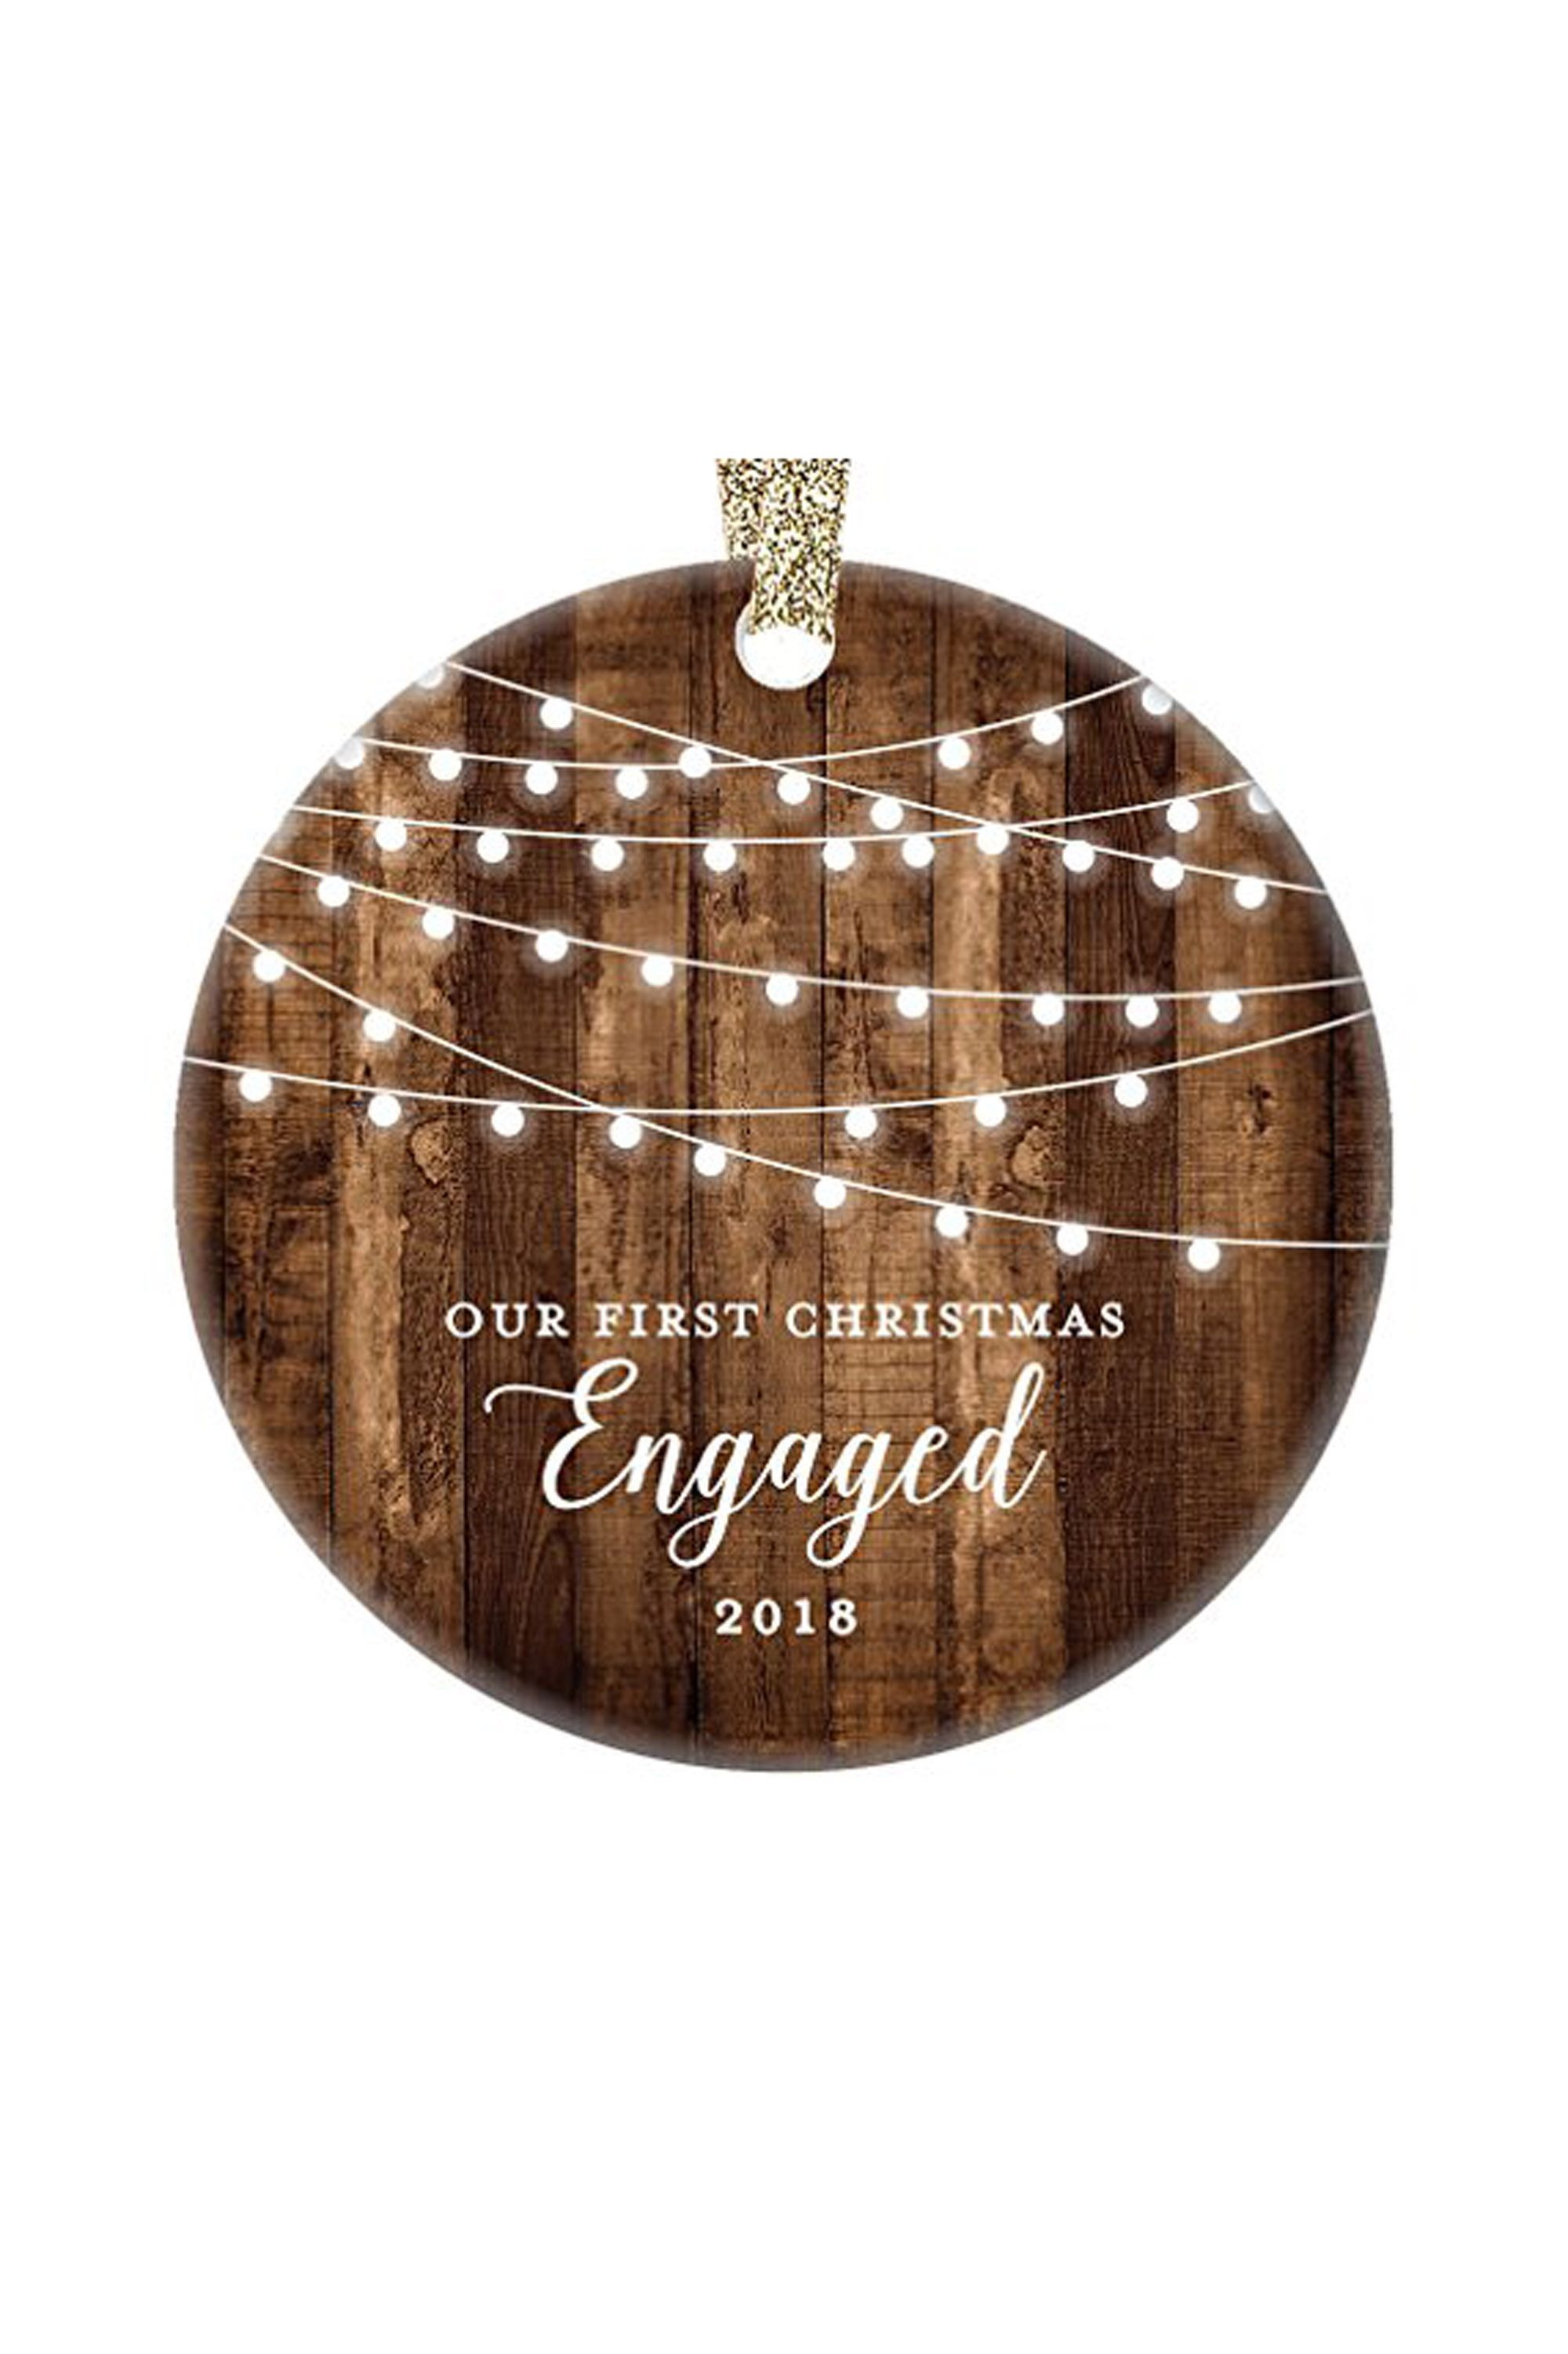 20 Engagement Ornaments - Personalized Ornaments for First Engaged ...